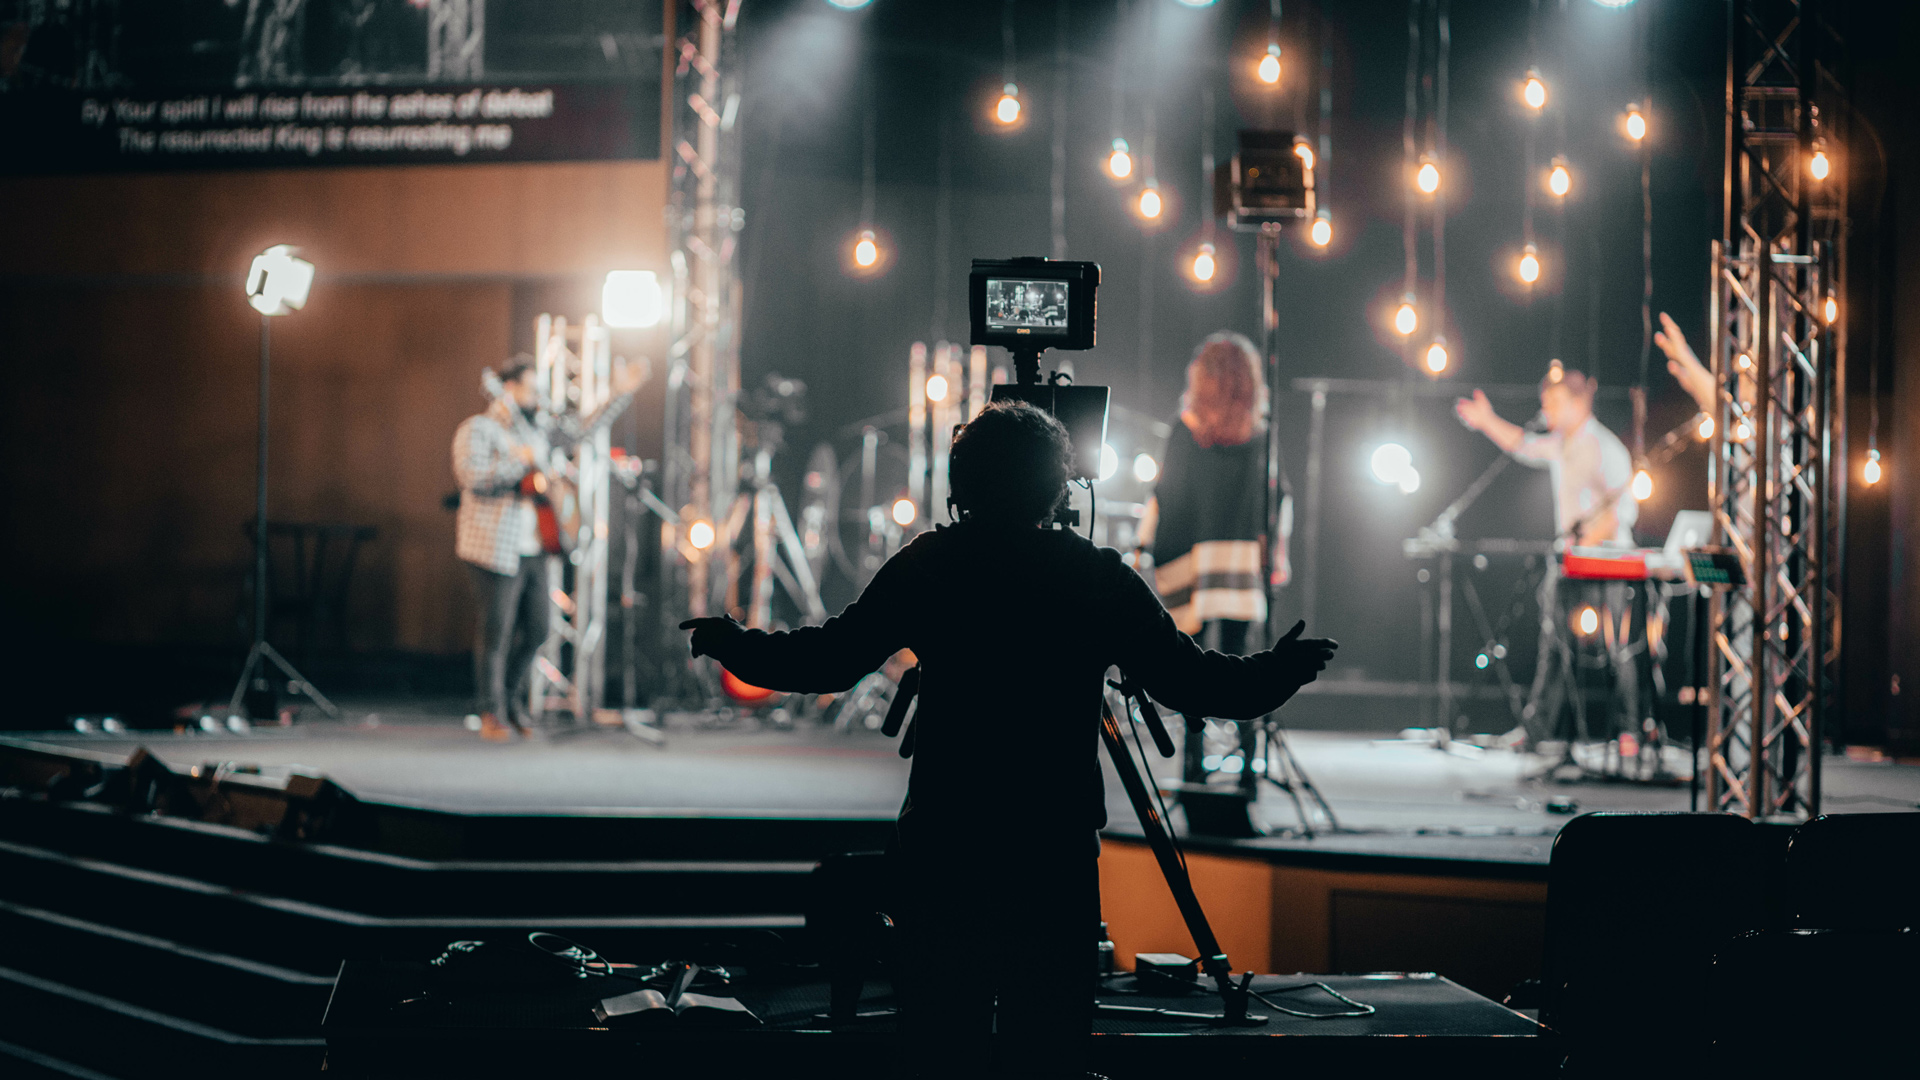 Lessons for Church Online